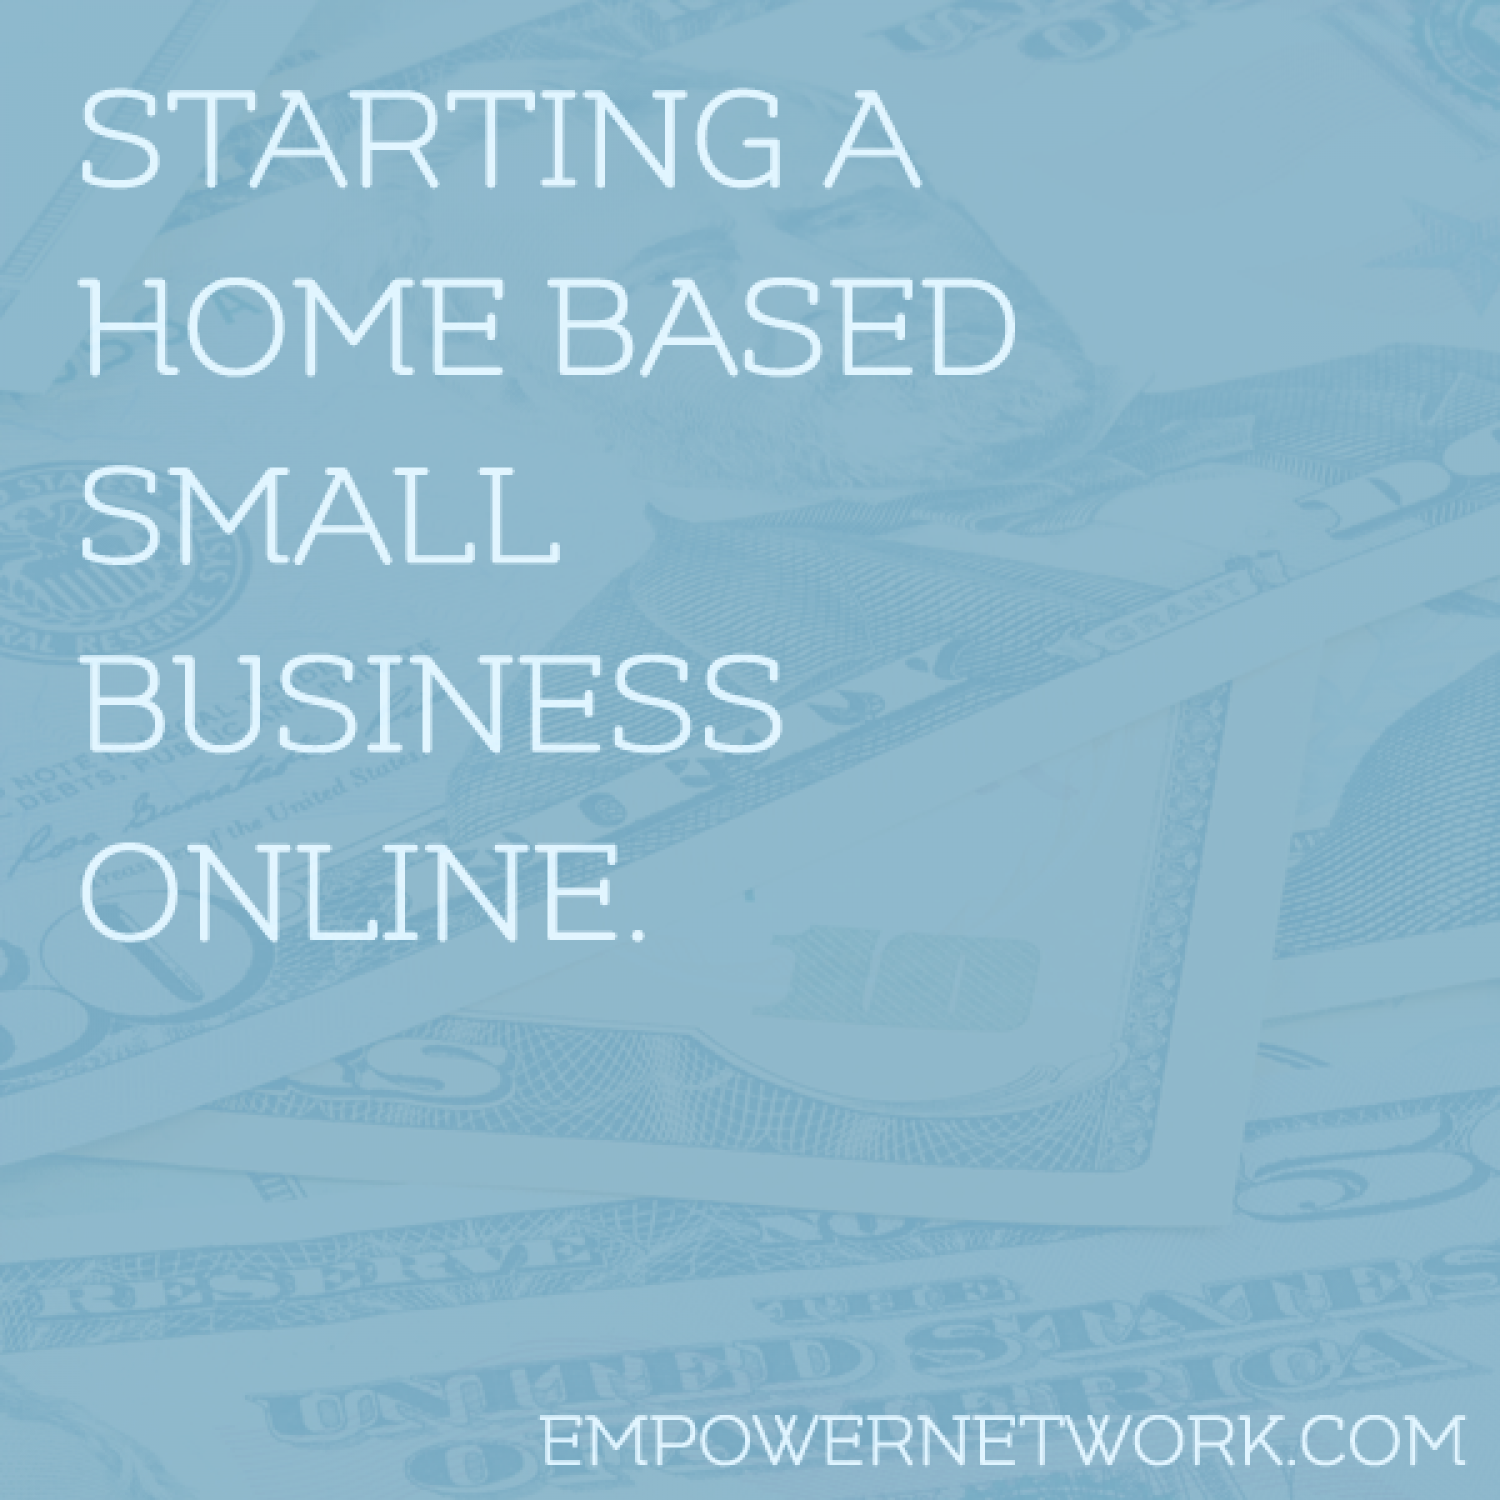 Starting A Home Based Small Business Online.